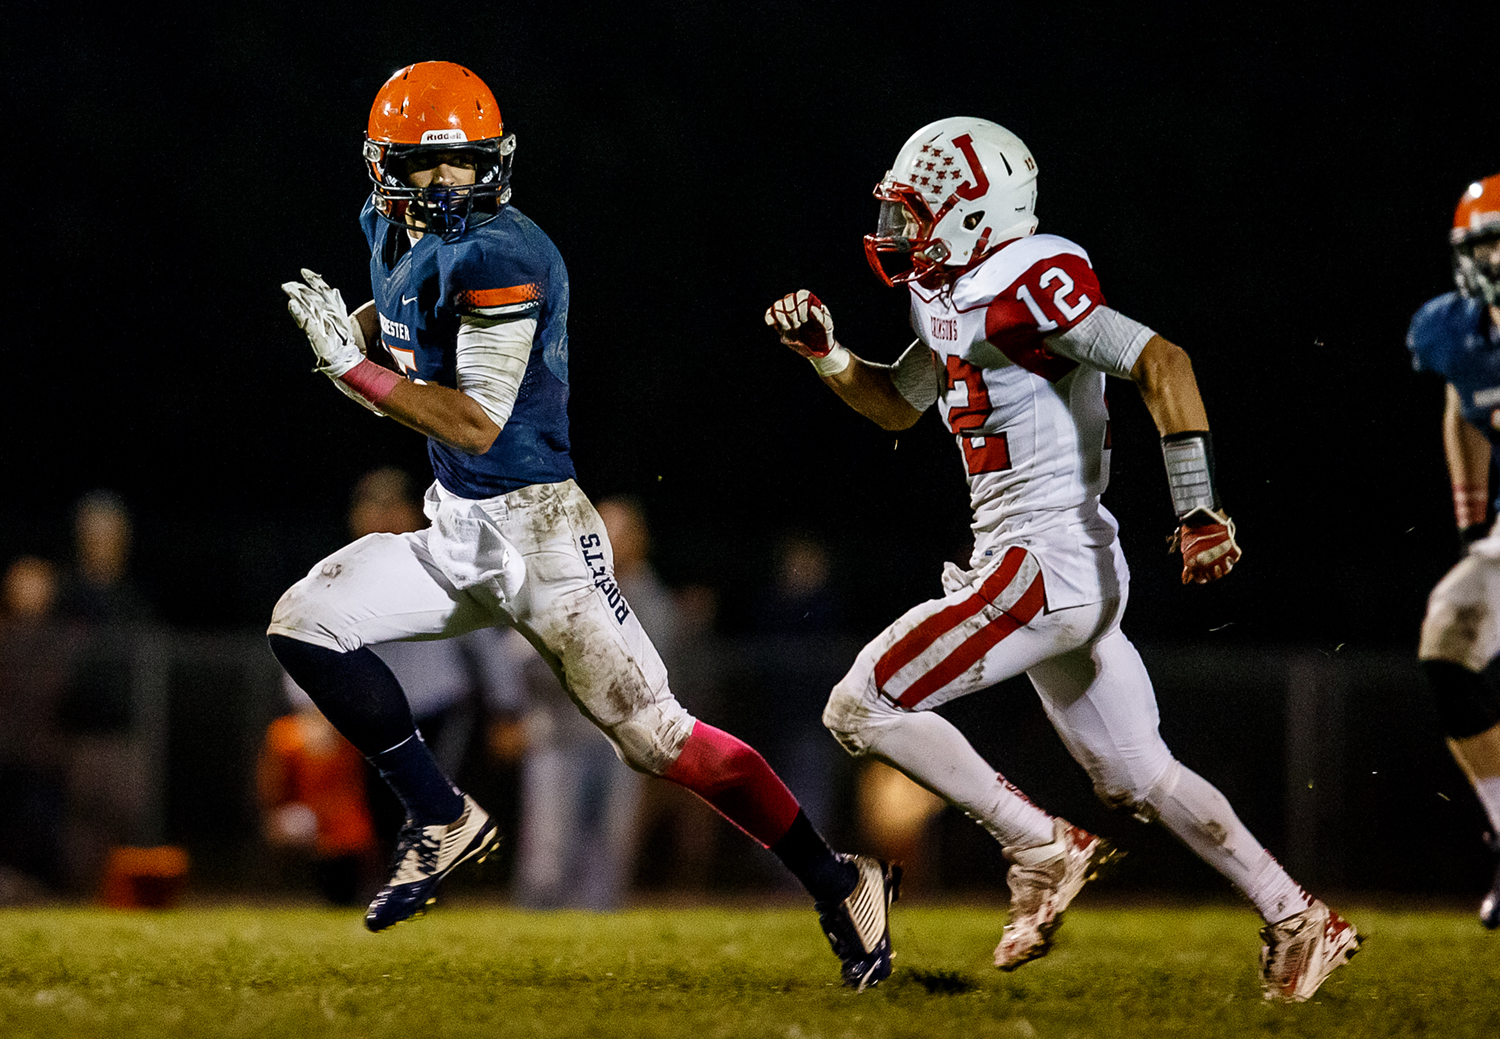 Rochester's Jeremy Bivens (15) breaks away from Jacksonville's C.J. Wright (12) on his way to a 73-yard touchdown during the second half at Rocket Booster Field, Friday, Oct. 10, 2014, in Rochester, Ill. Justin L. Fowler/The State Journal-Register